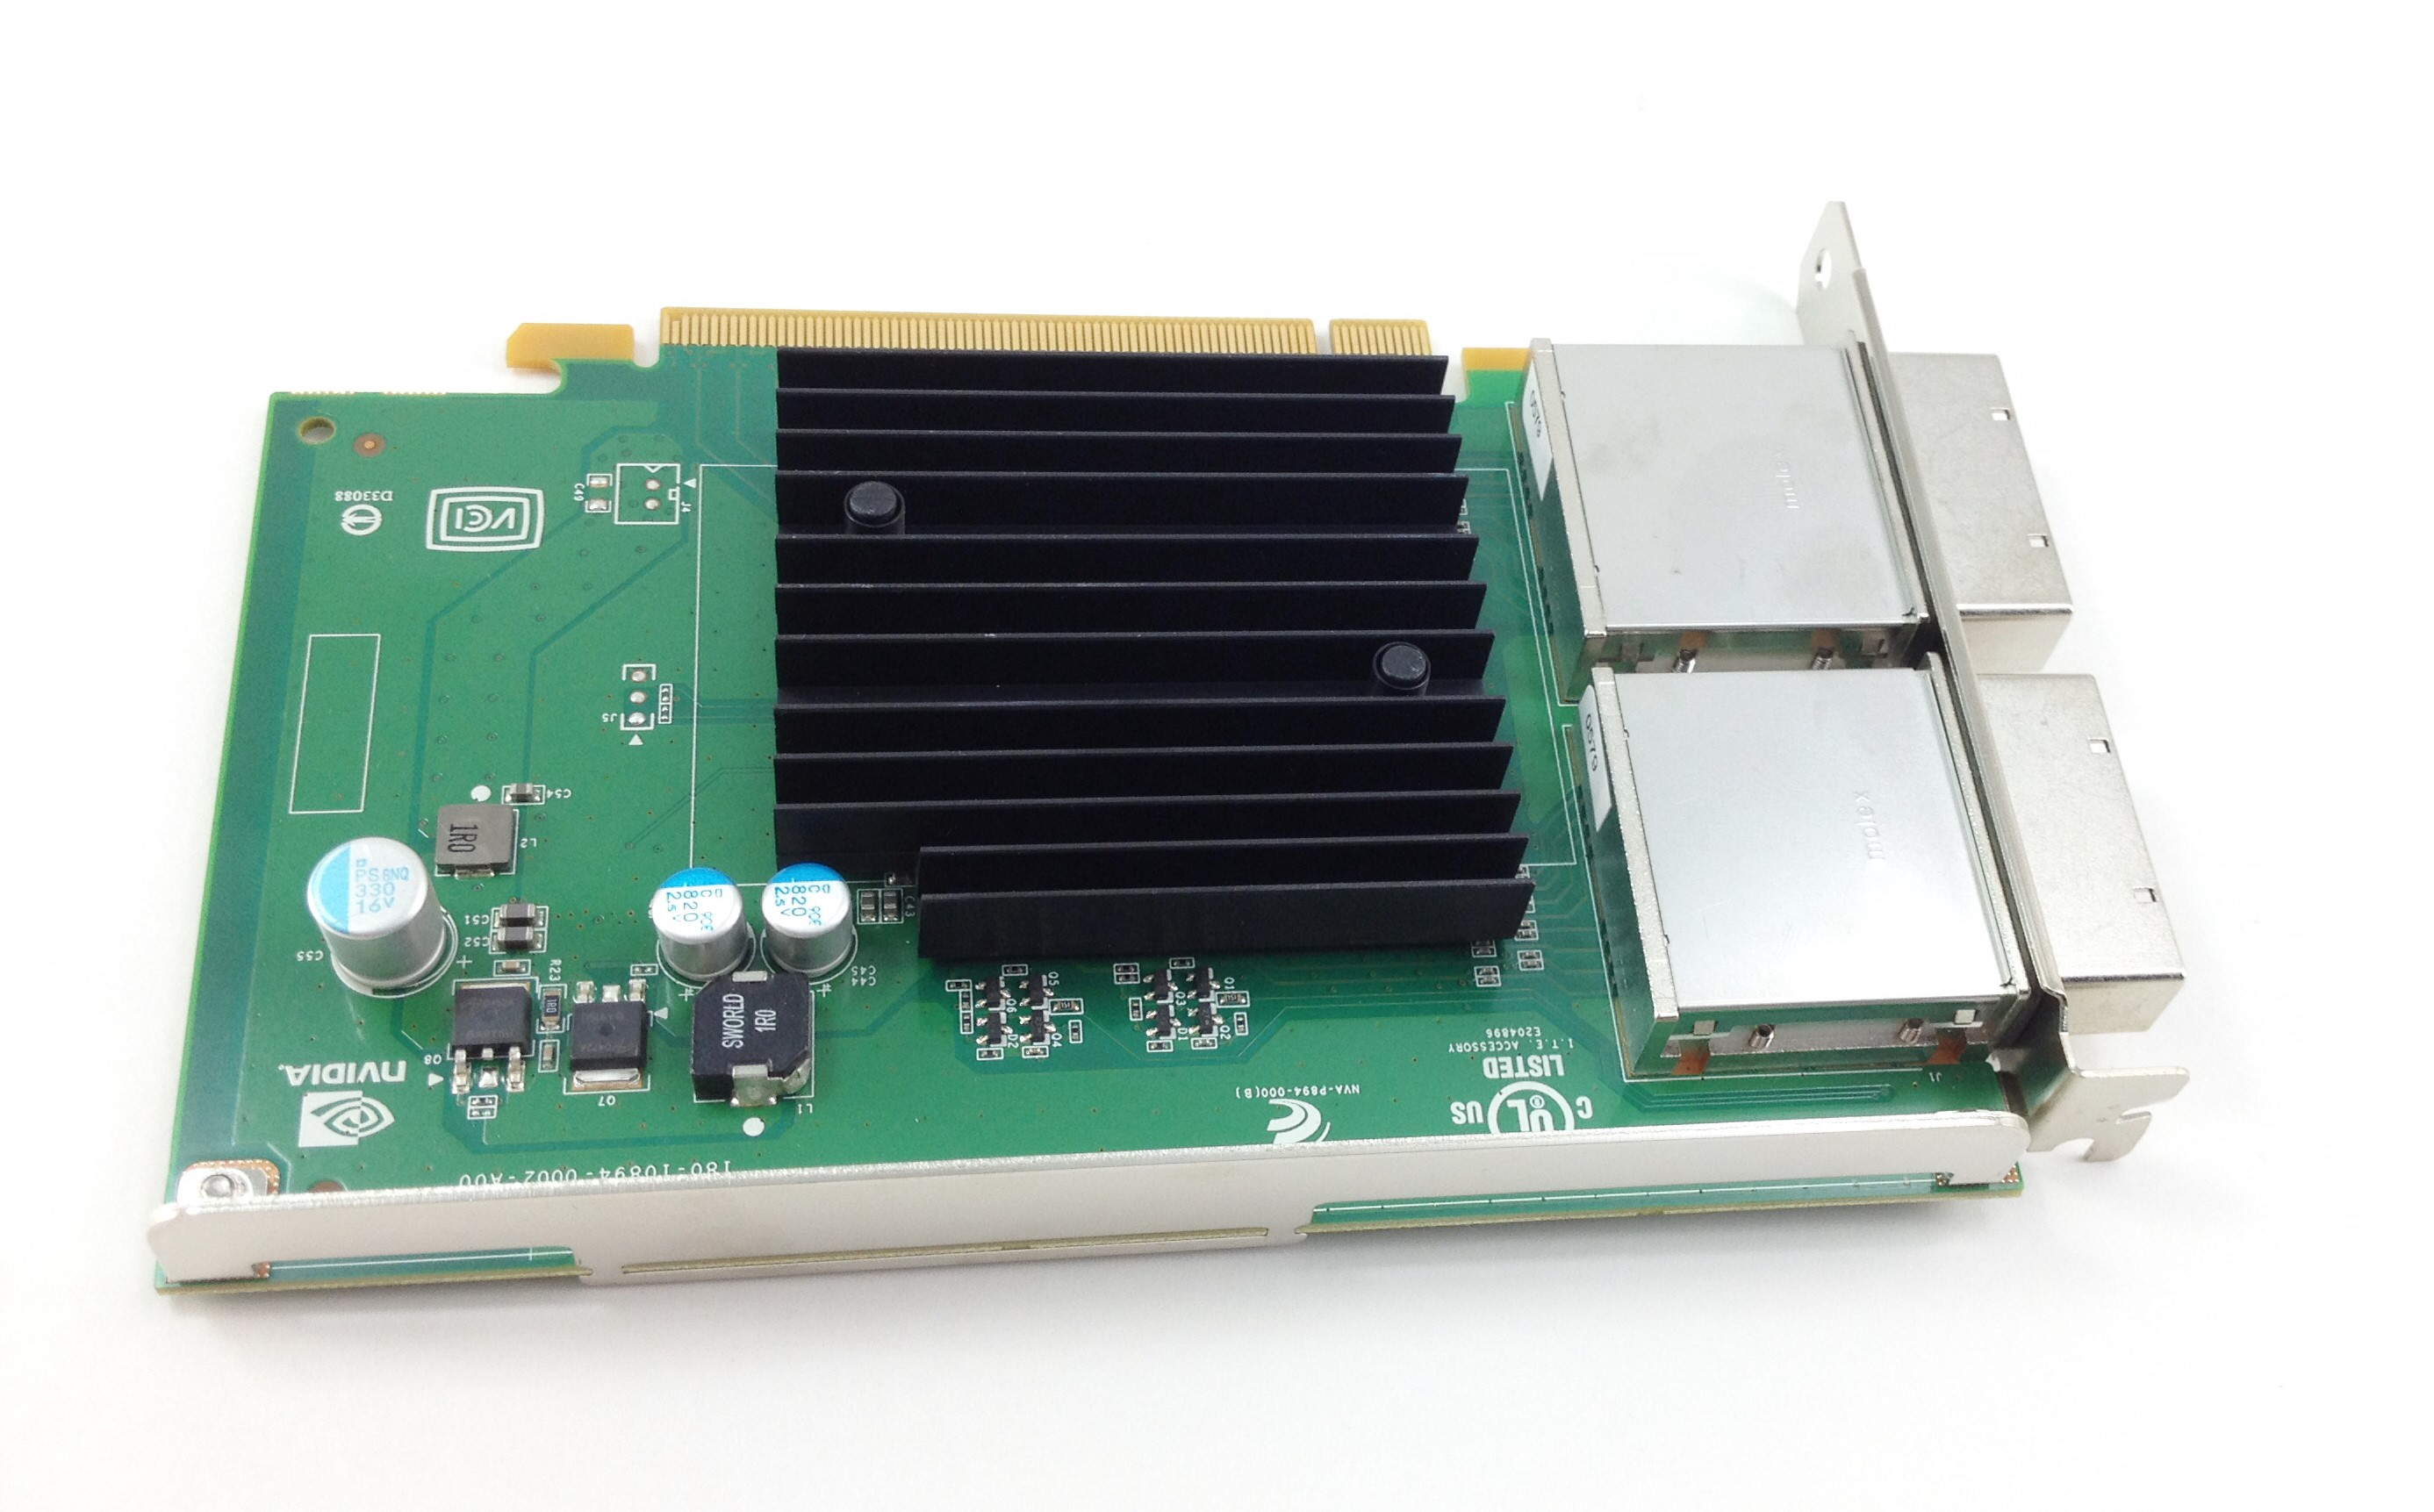 Nvidia Tesla P894 PCI-E 2.0 X 16 Host Interface Card (930-50894-0501-000)